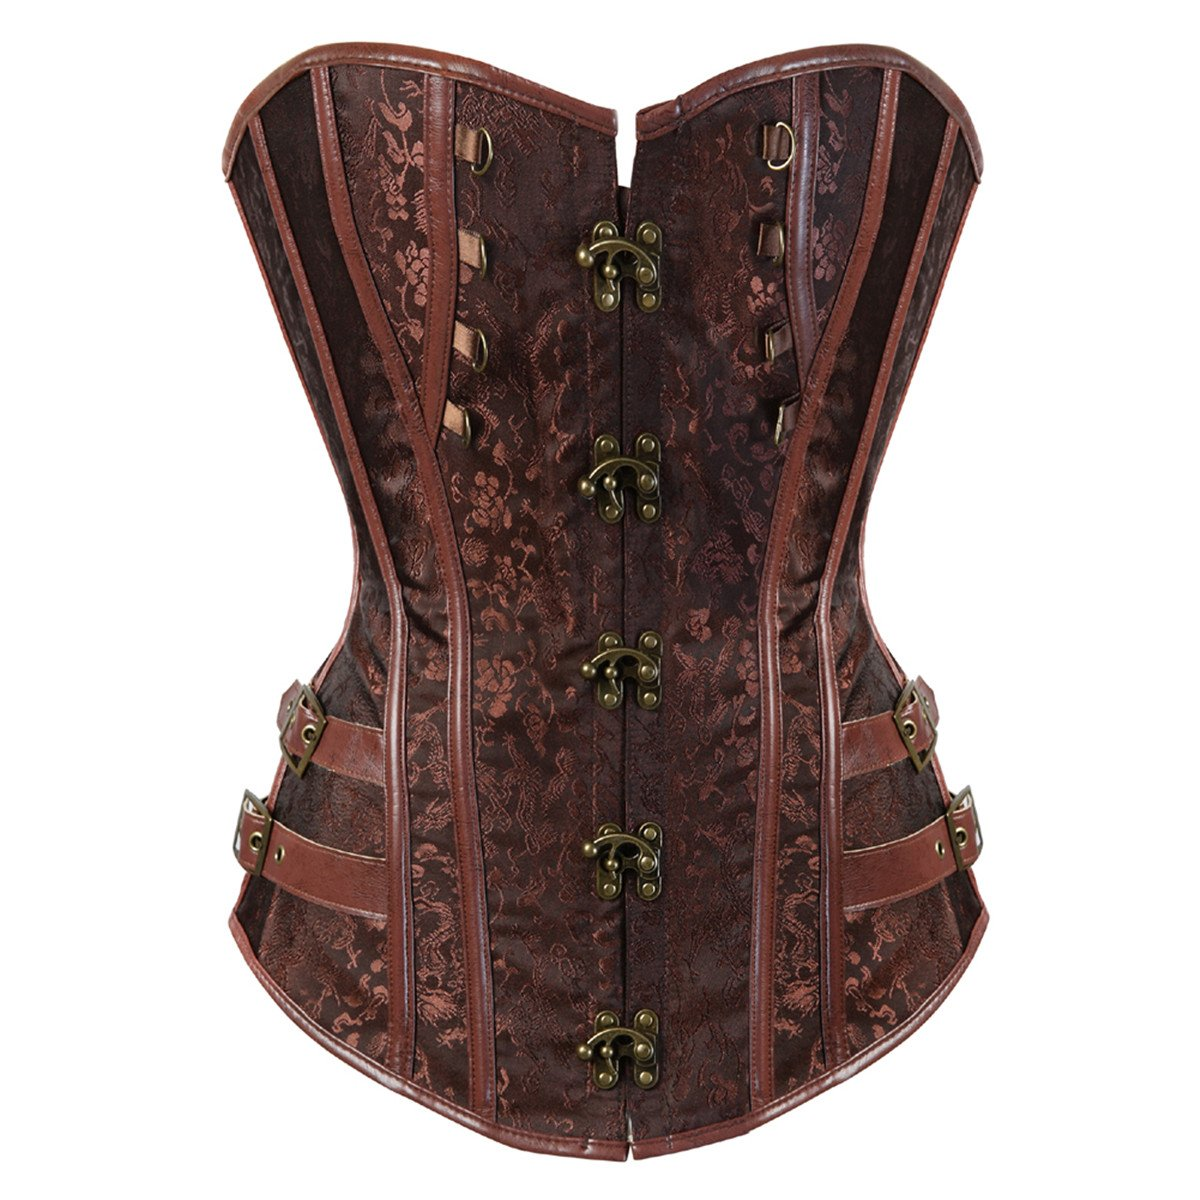 Steampunk Tops | Blouses, Shirts Kranchungel Womens Punk Rock Faux Leather Corset Retro Goth Waist Cincher Basque Bustier $48.69 AT vintagedancer.com